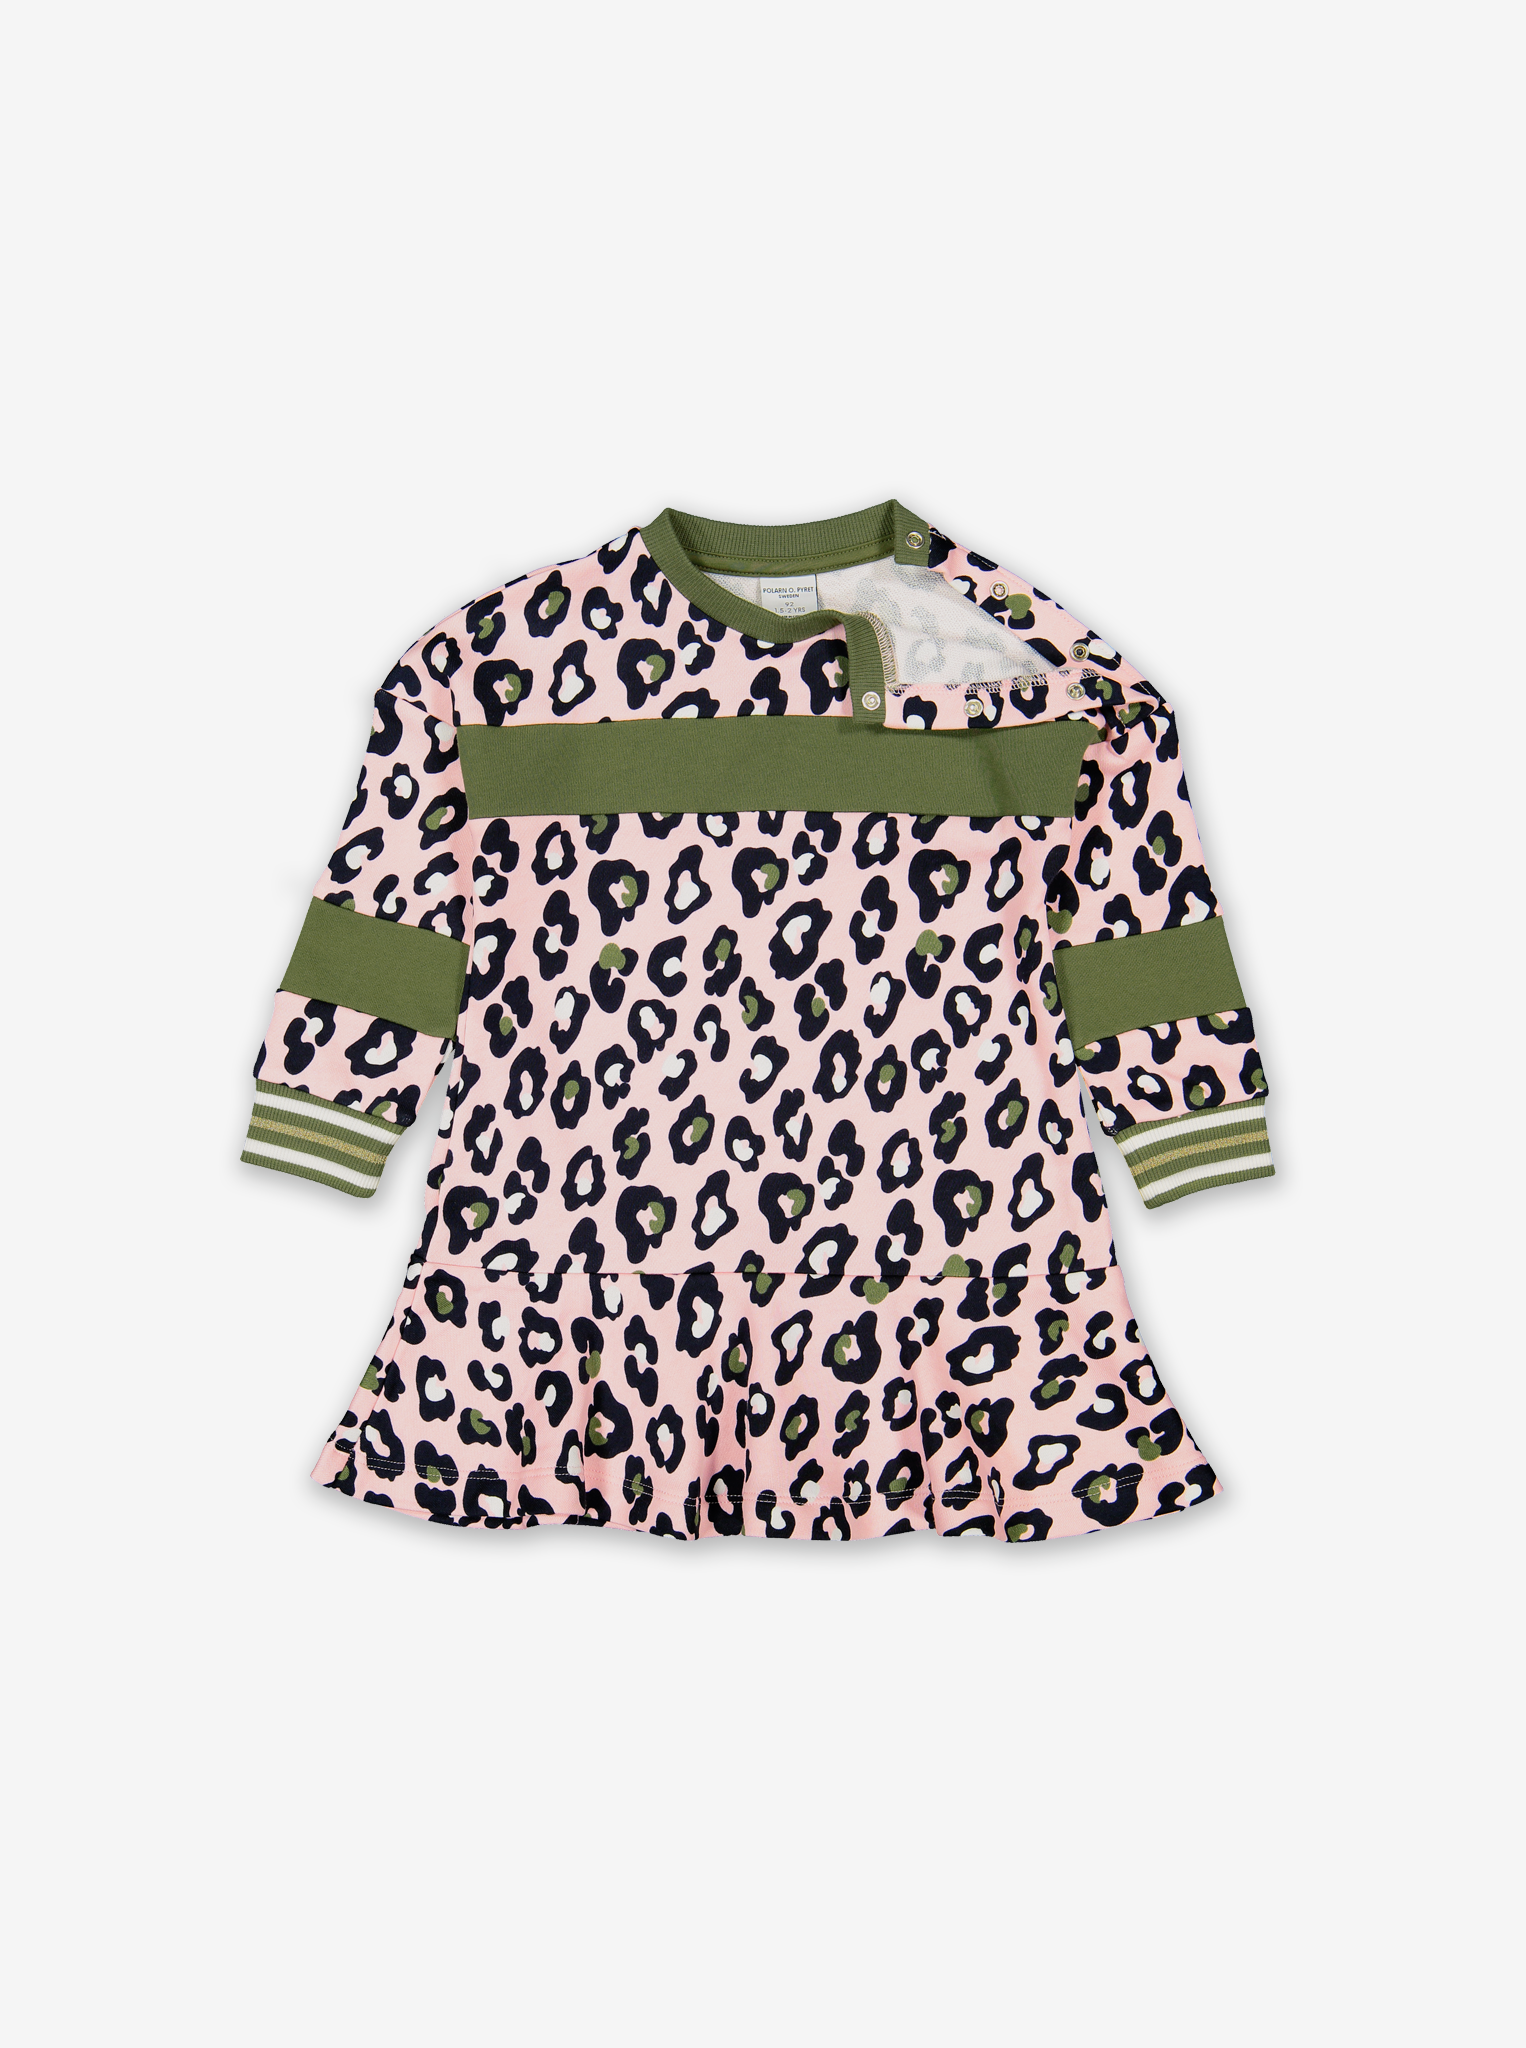 Leopard Print Kids Dress-Girl-1-6y-Pink